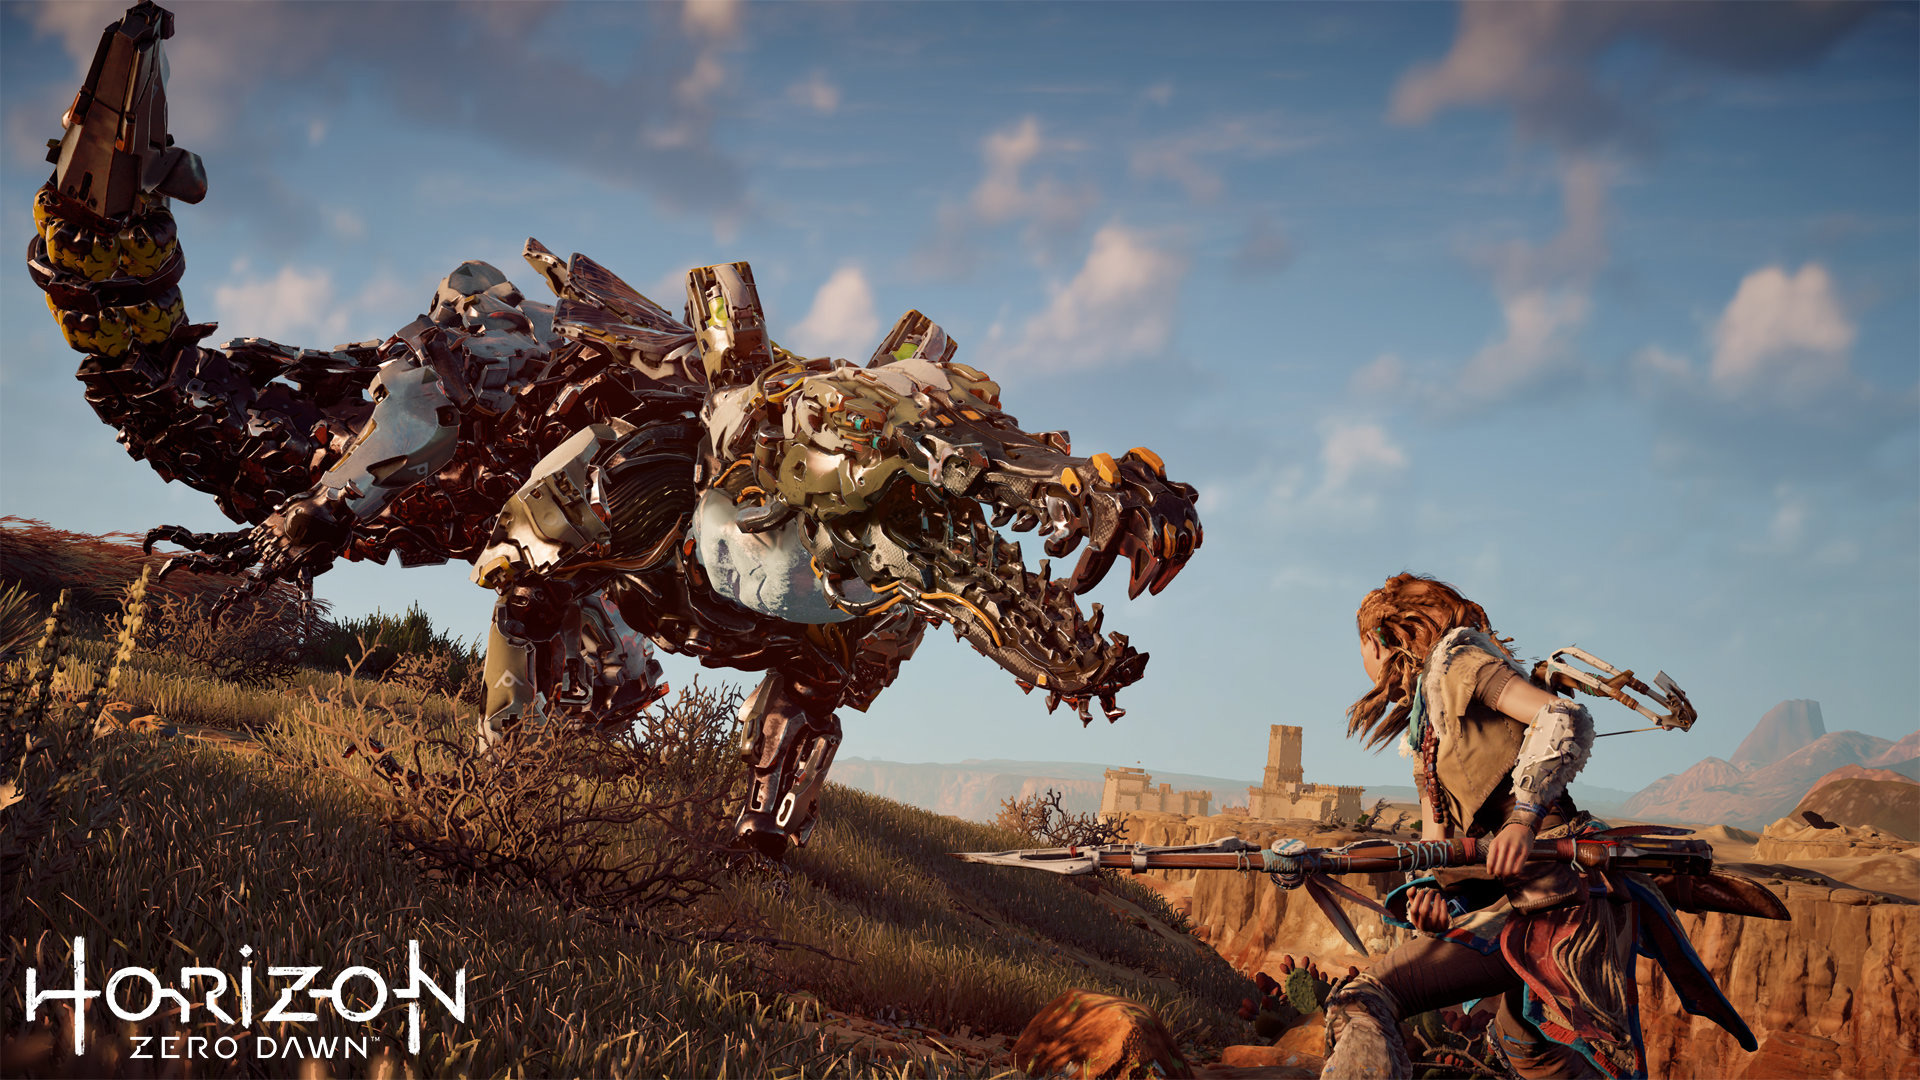 Horizon Zero Dawn Karte Ruinen.Horizon Zero Dawn Gameware At